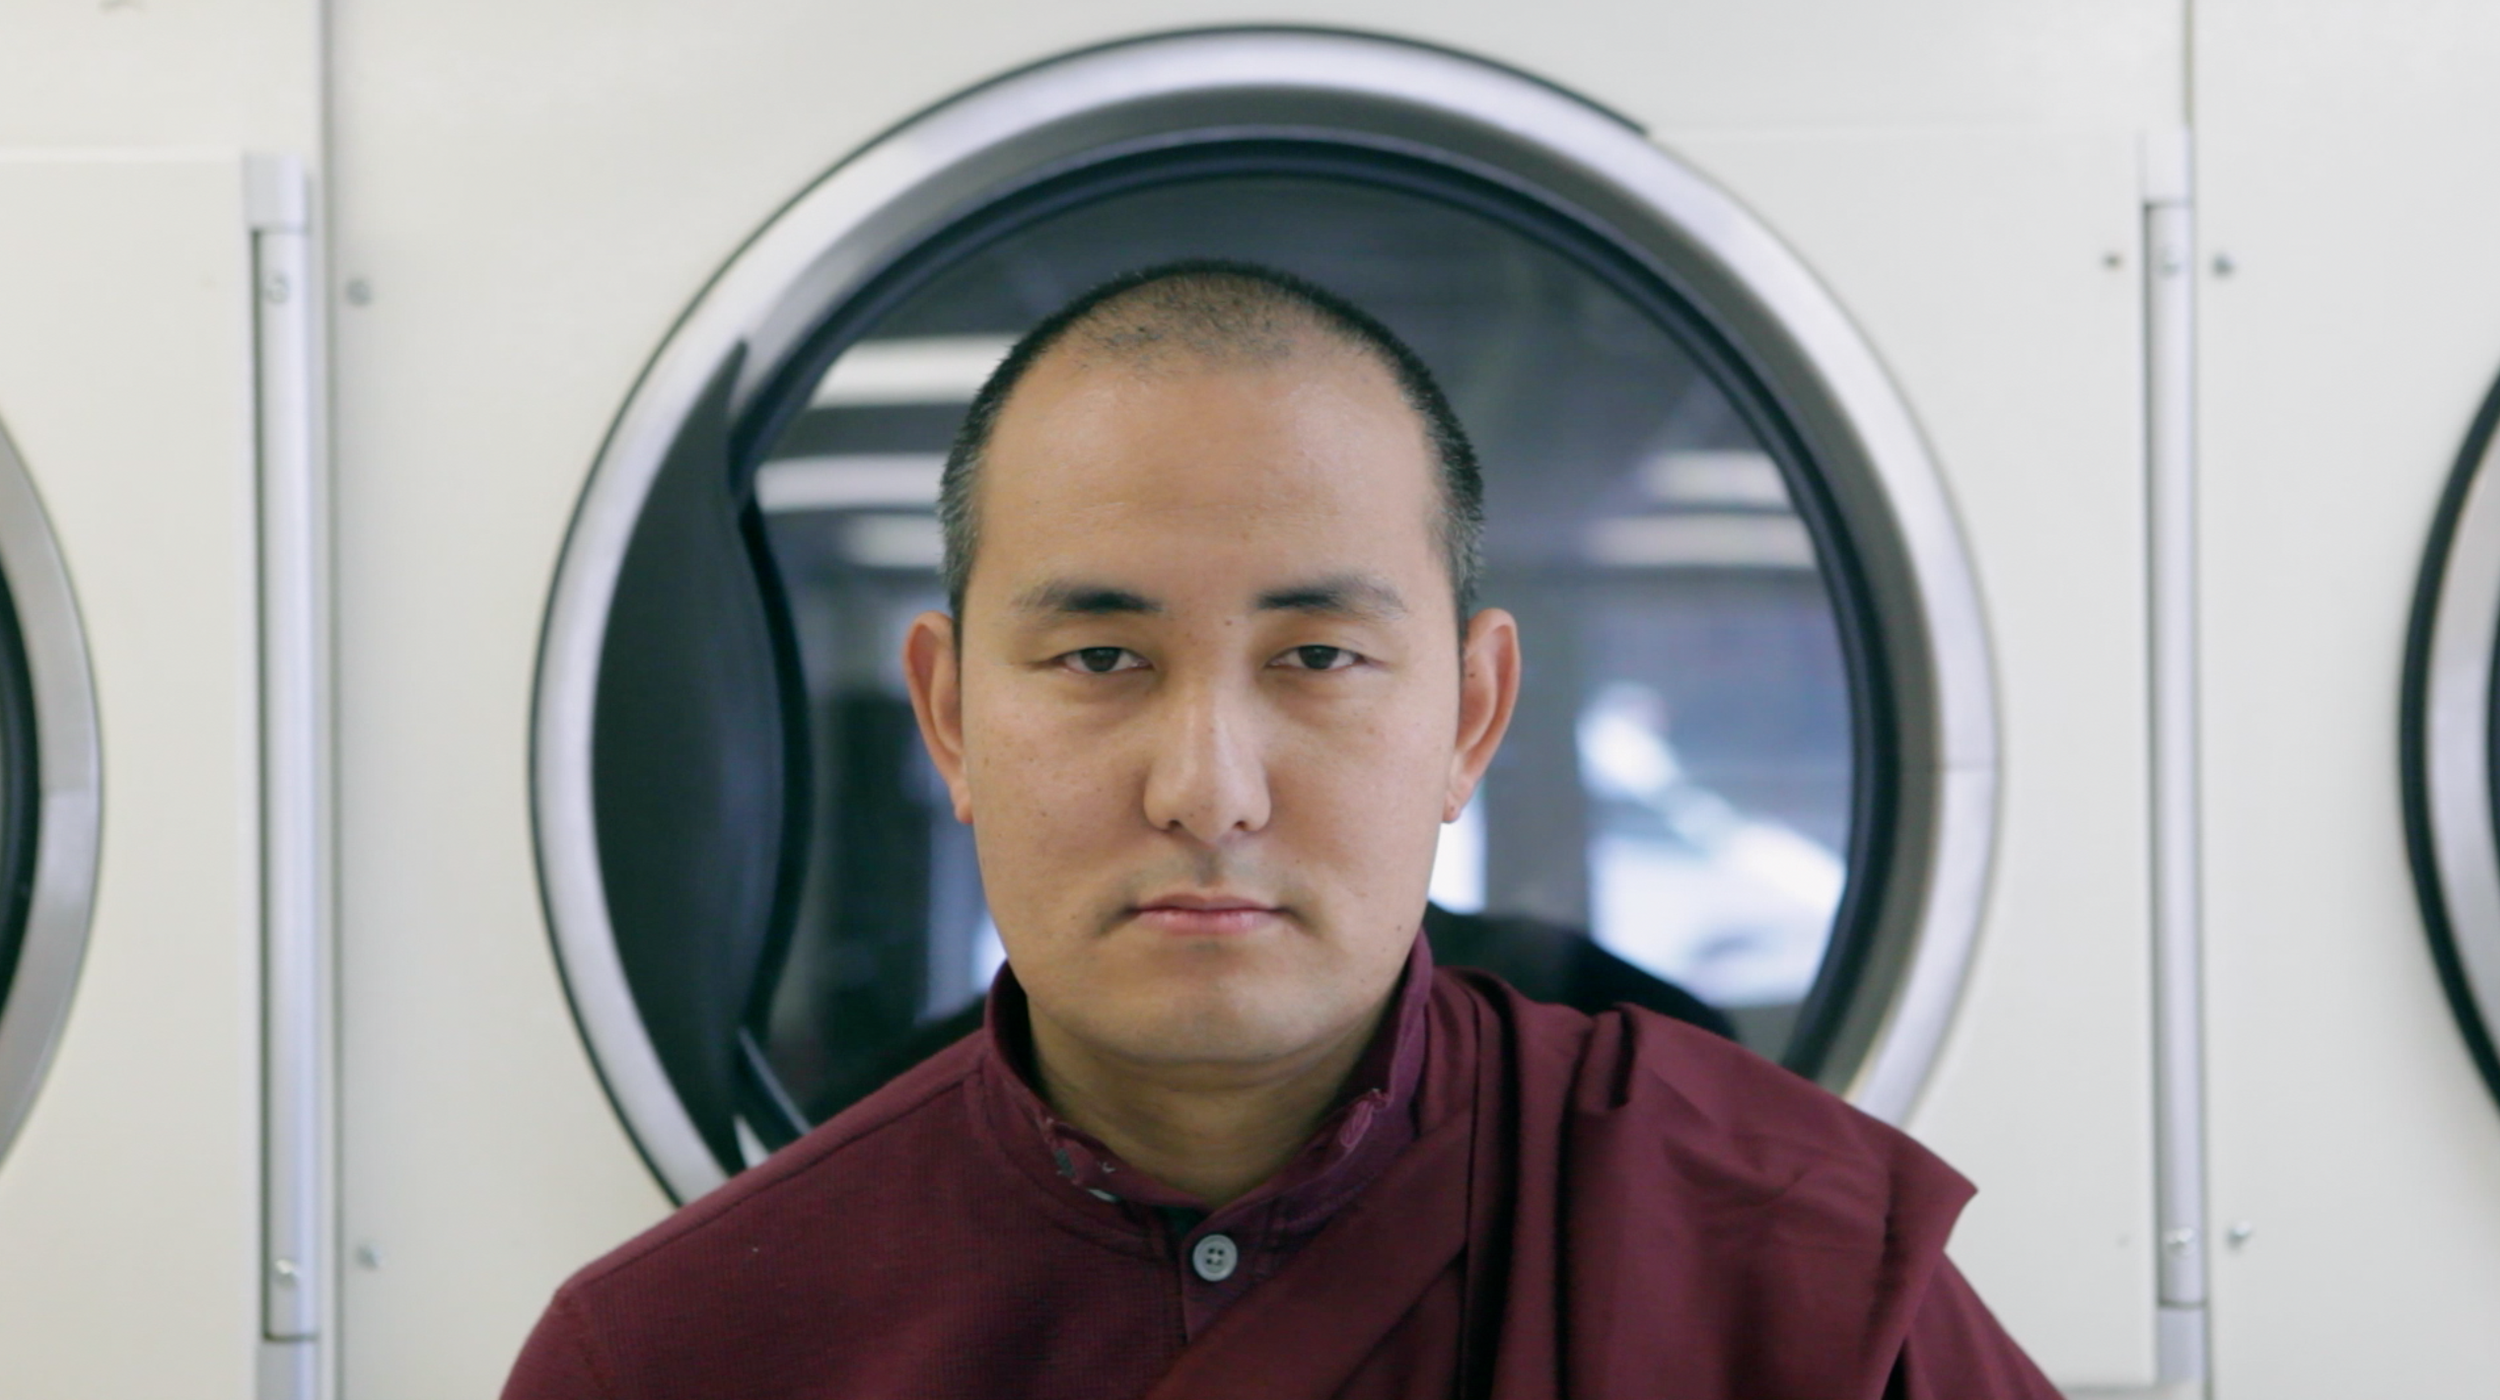 """TJ"" from ""Laundromat Portraits"" Follow Link to see the on-going project of Laundromat Portraits"